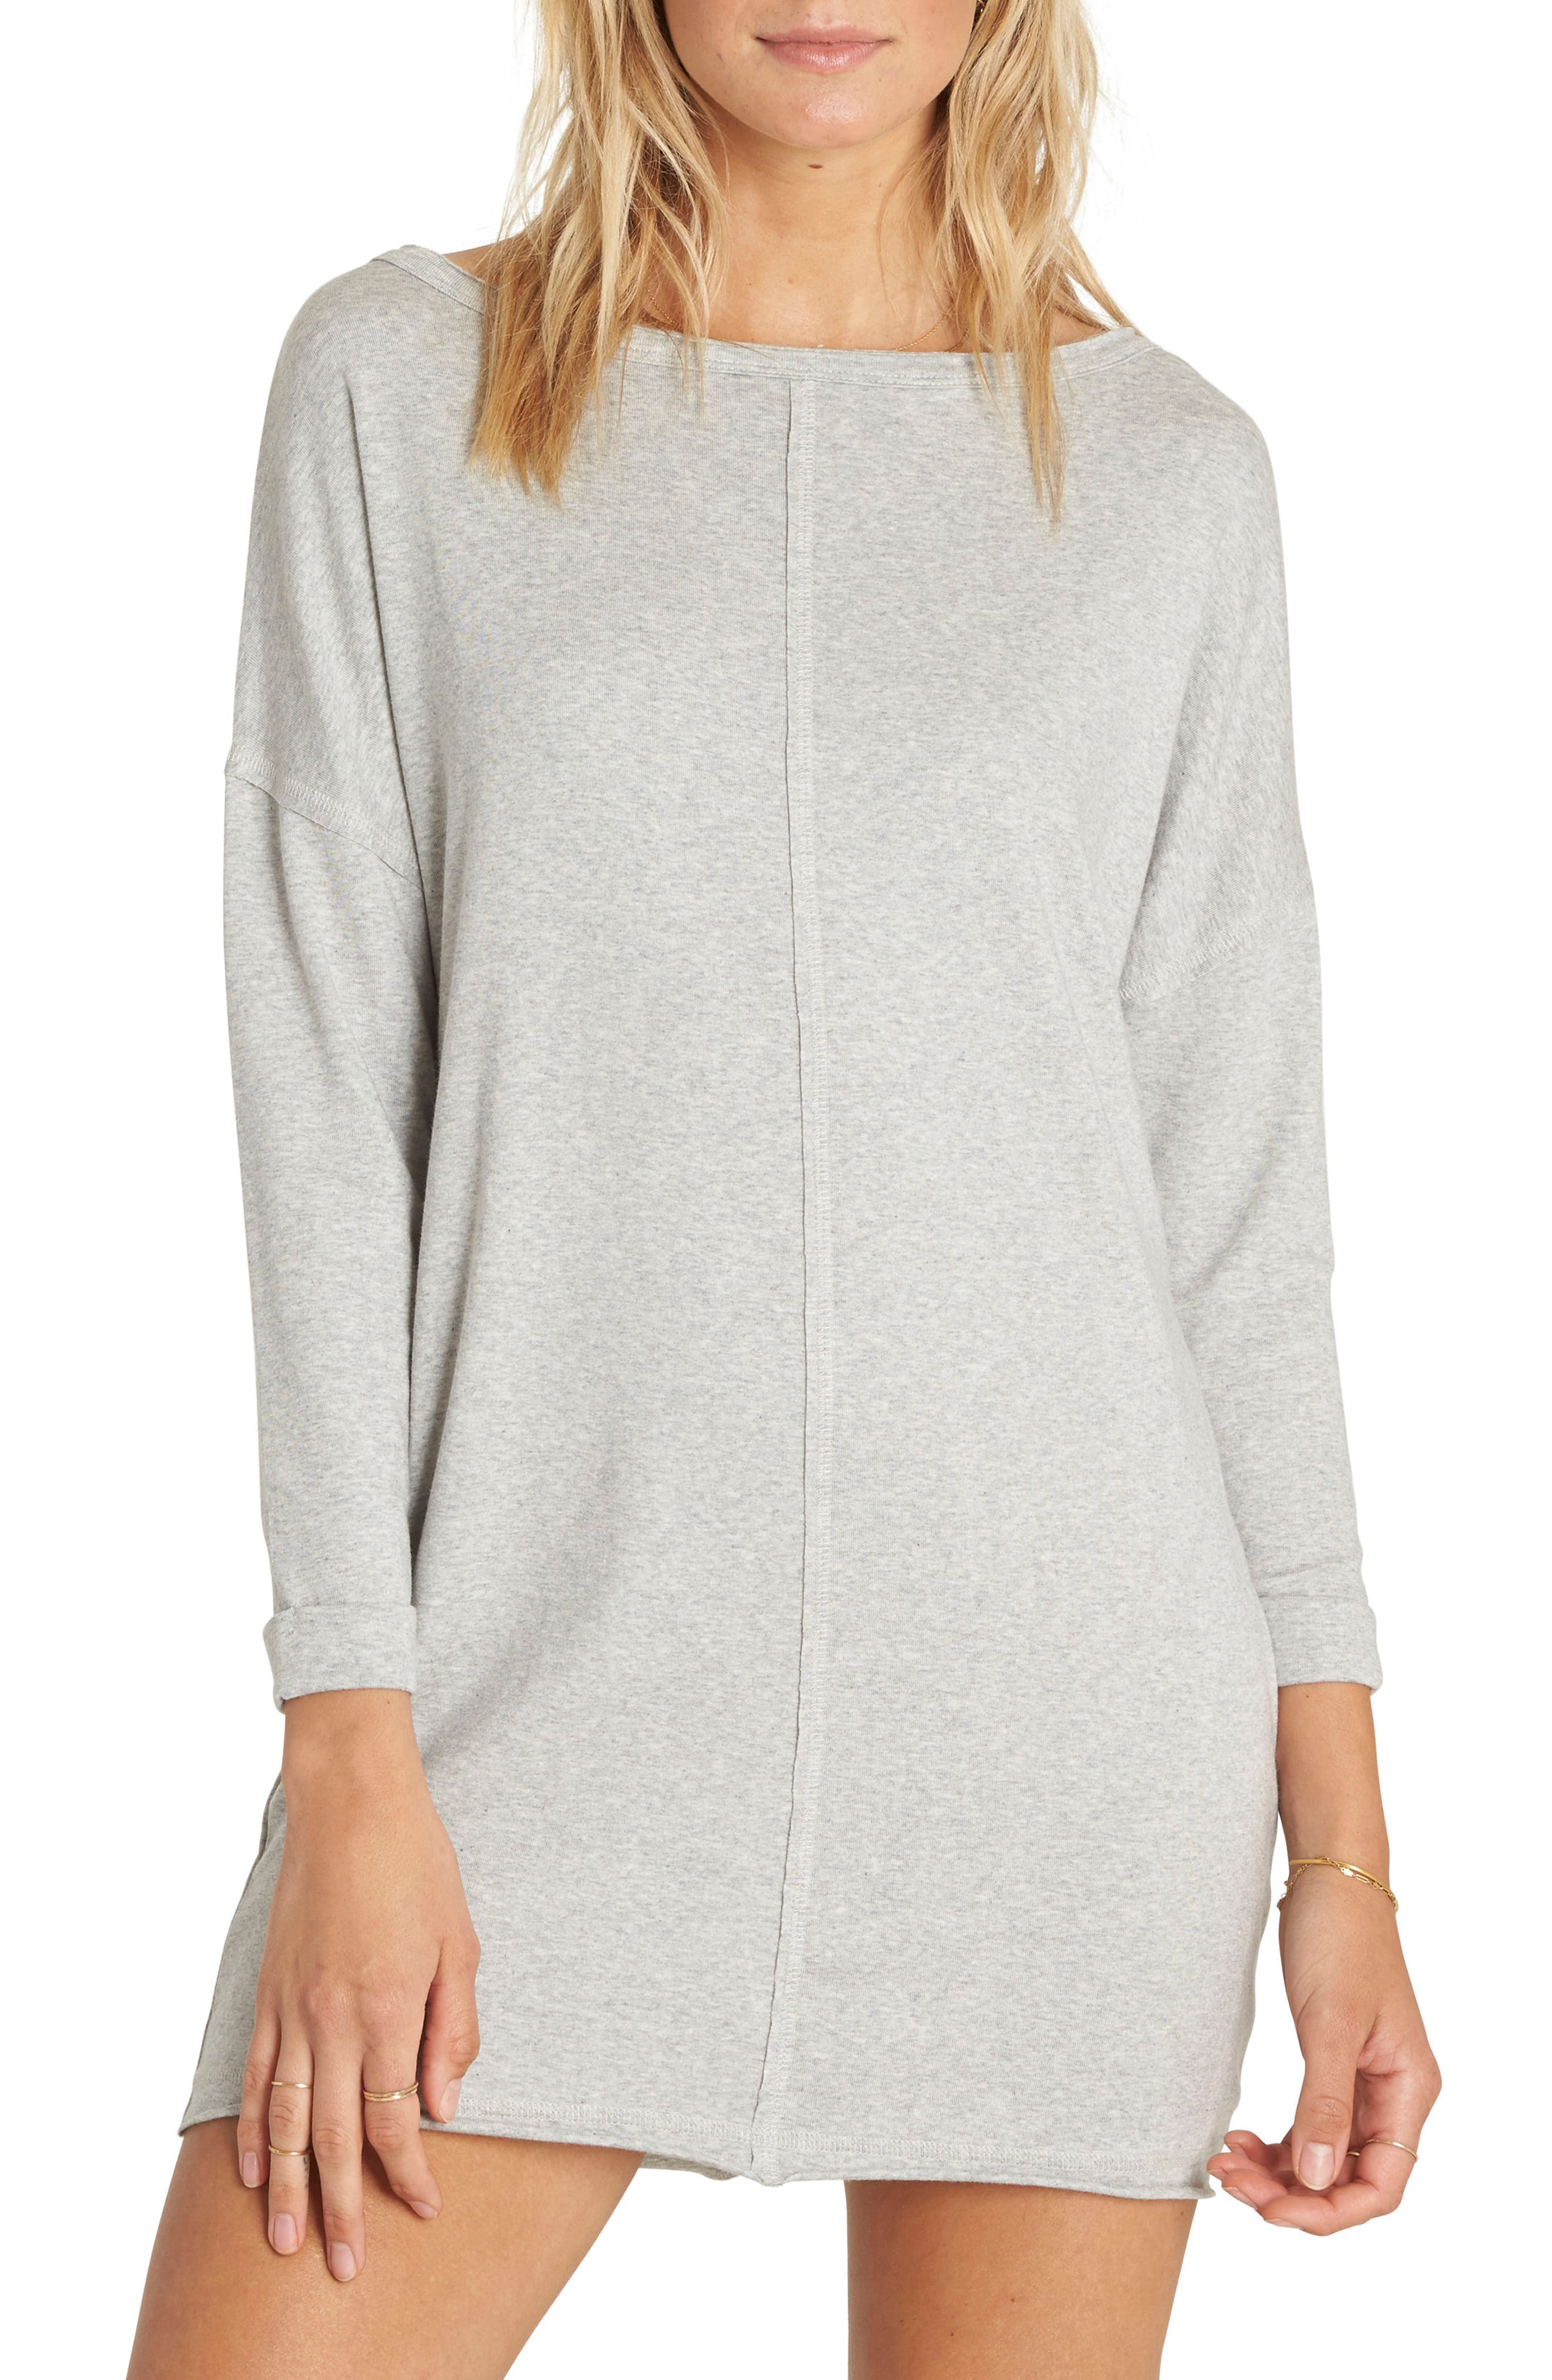 Only One T-Shirt Dress,                         Main,                         color, Athletic Grey